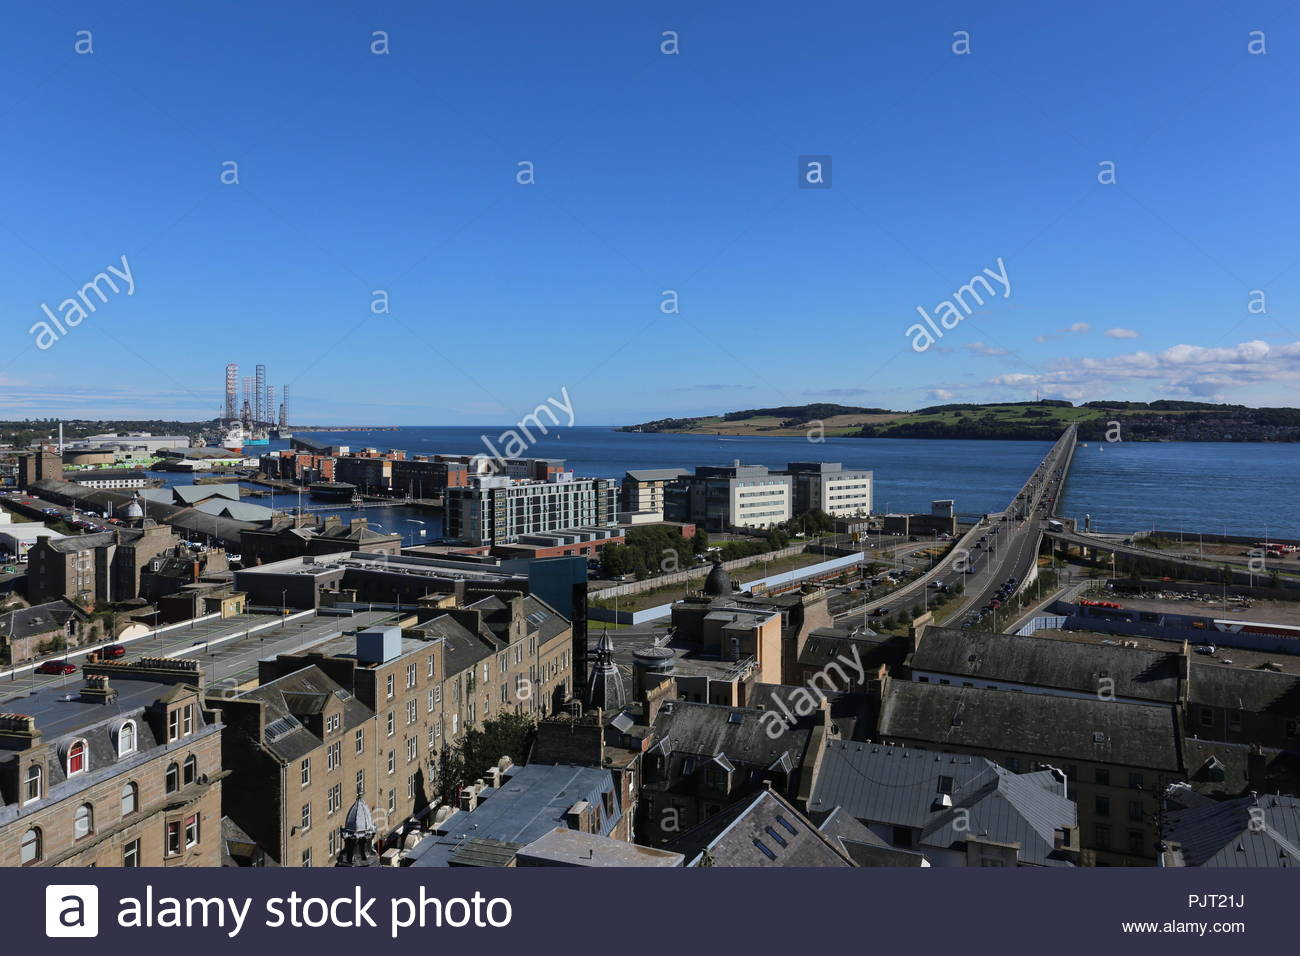 Elevated view of Port of Dundee, City Quay  and Tay Road Bridge Dundee Scotland  September 2018 - Stock Image